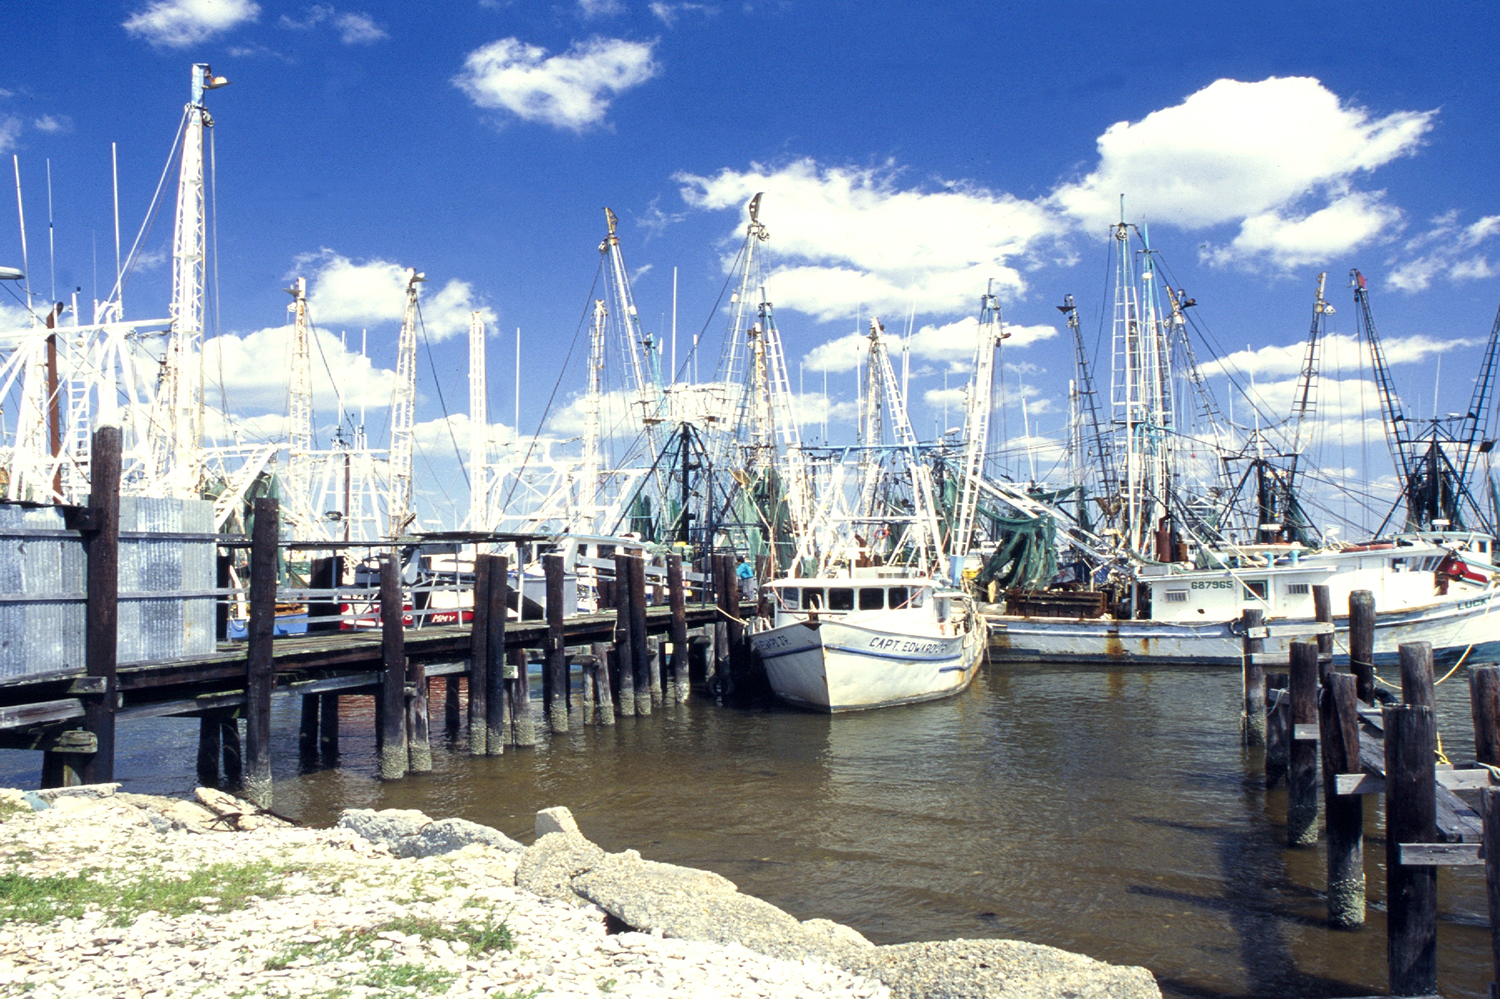 Shrimping Boats in Mississippi